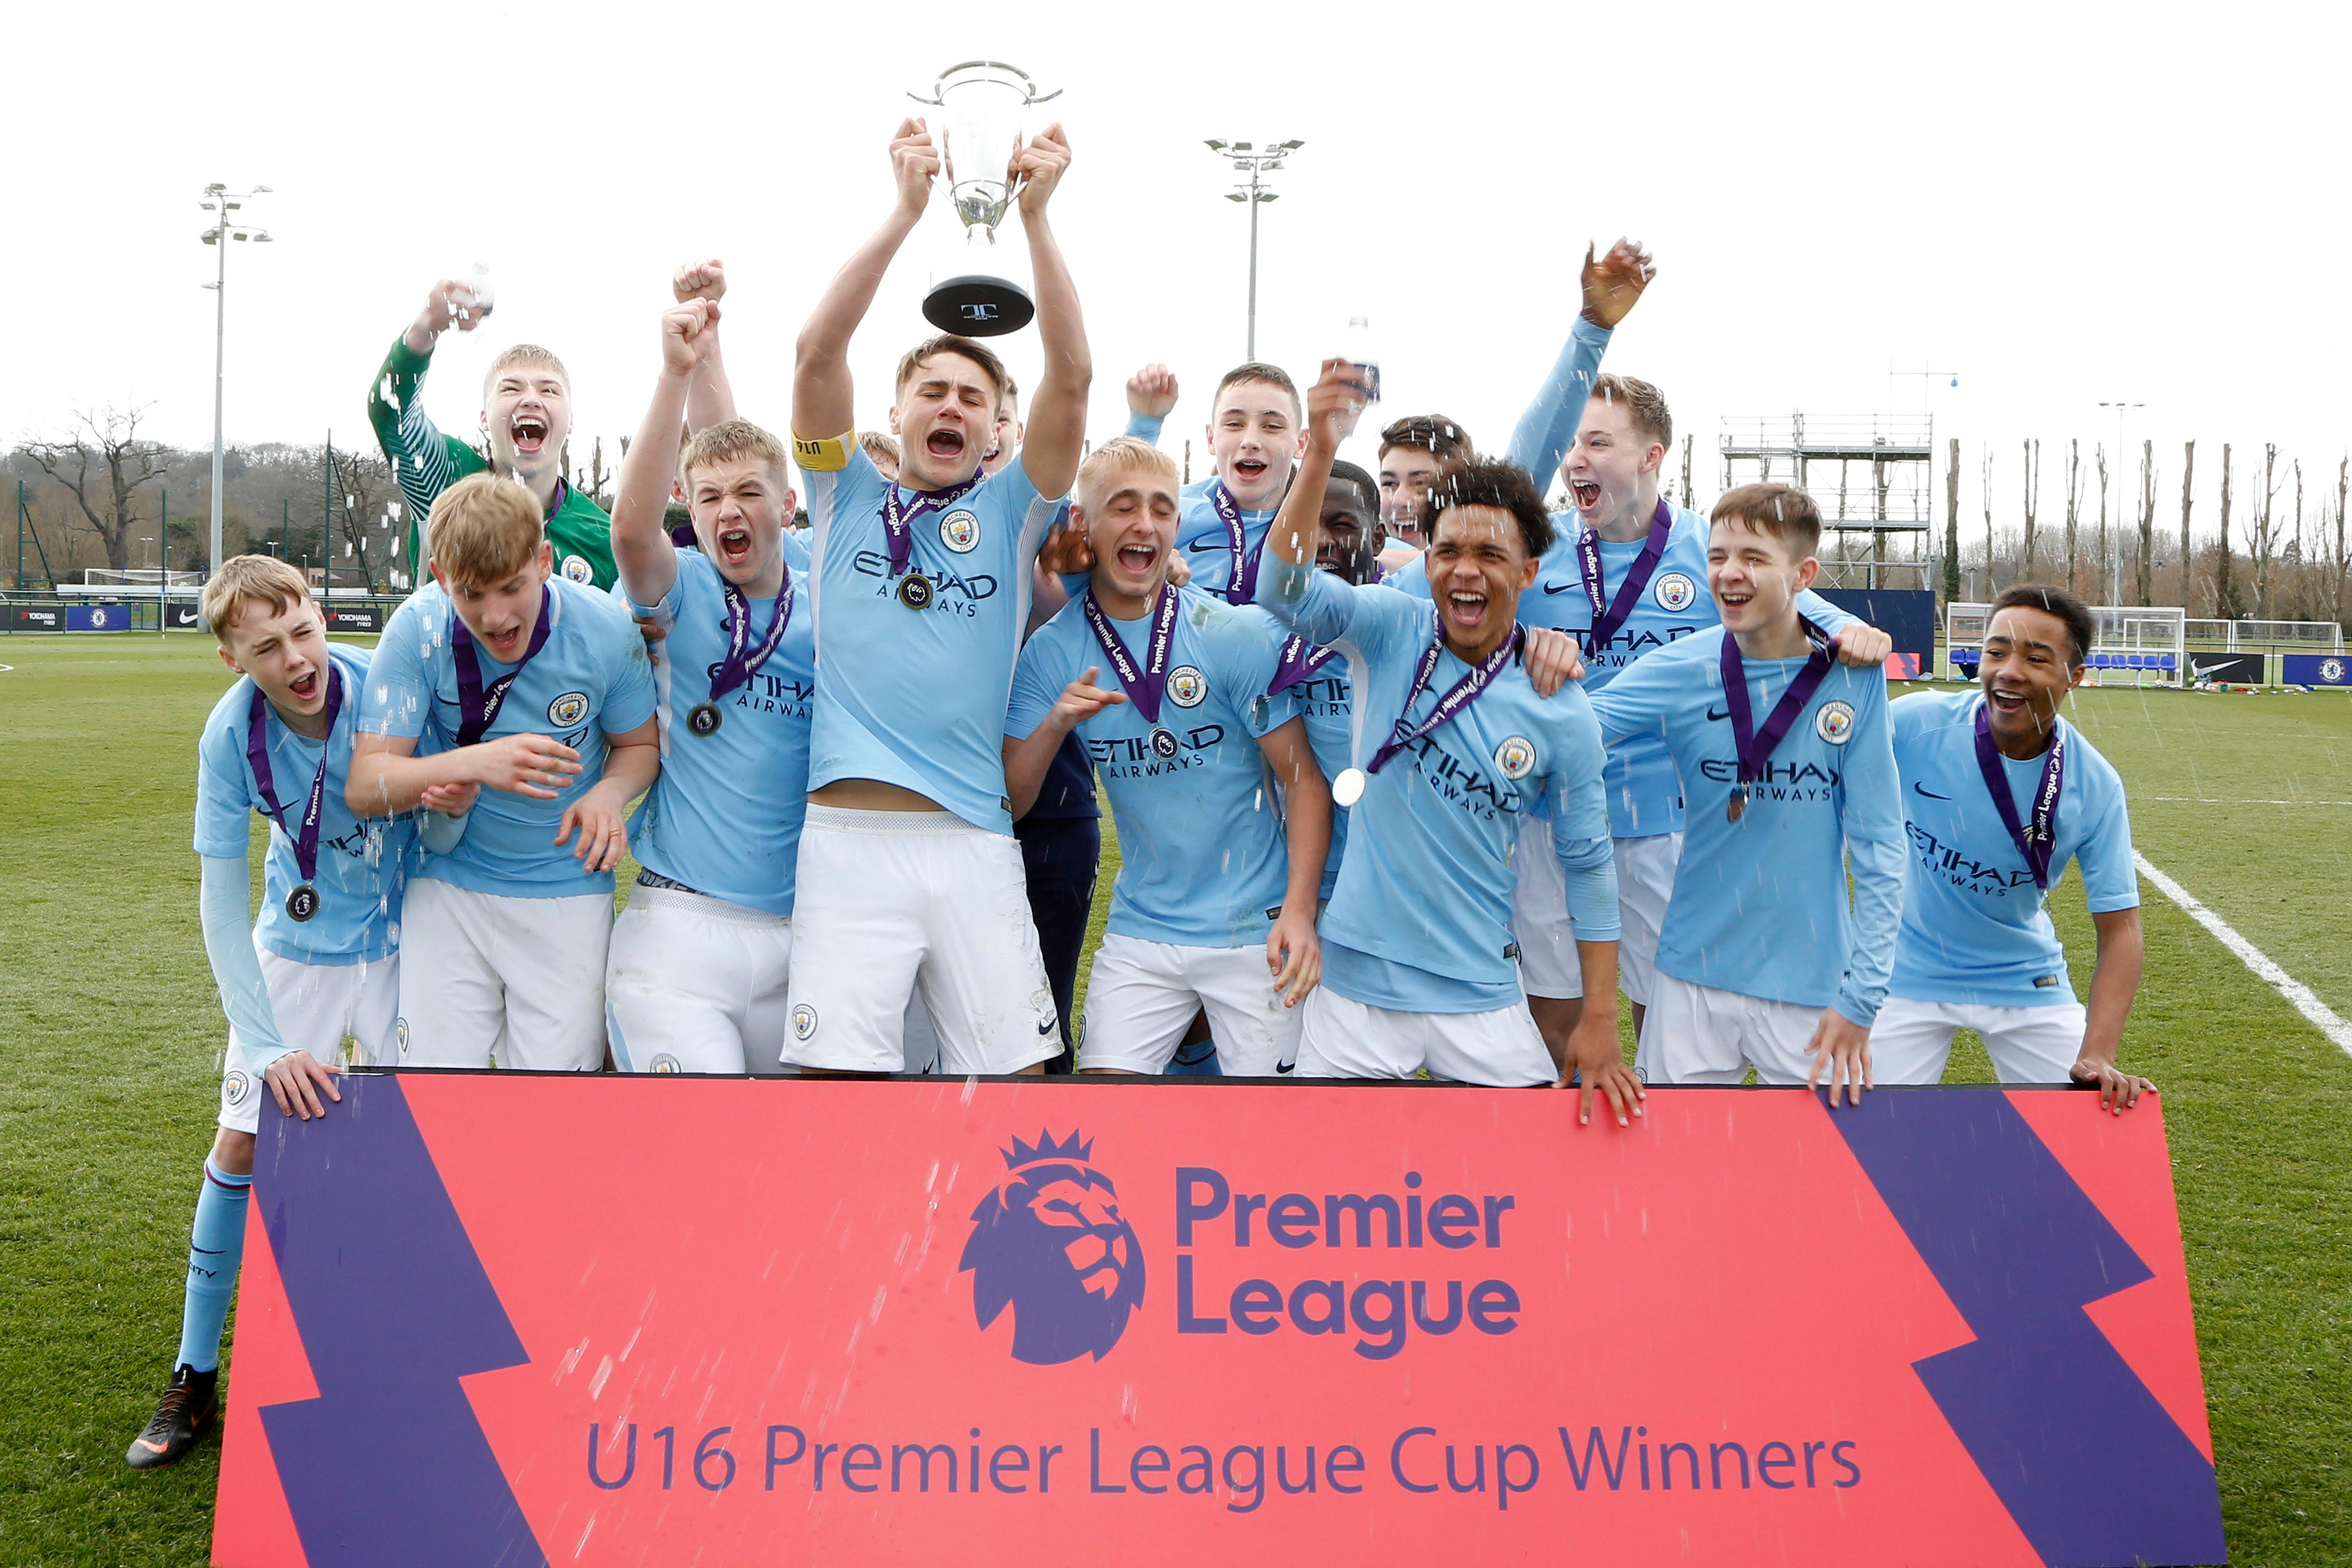 Man City lift U16 PL Cup after goal in last minute